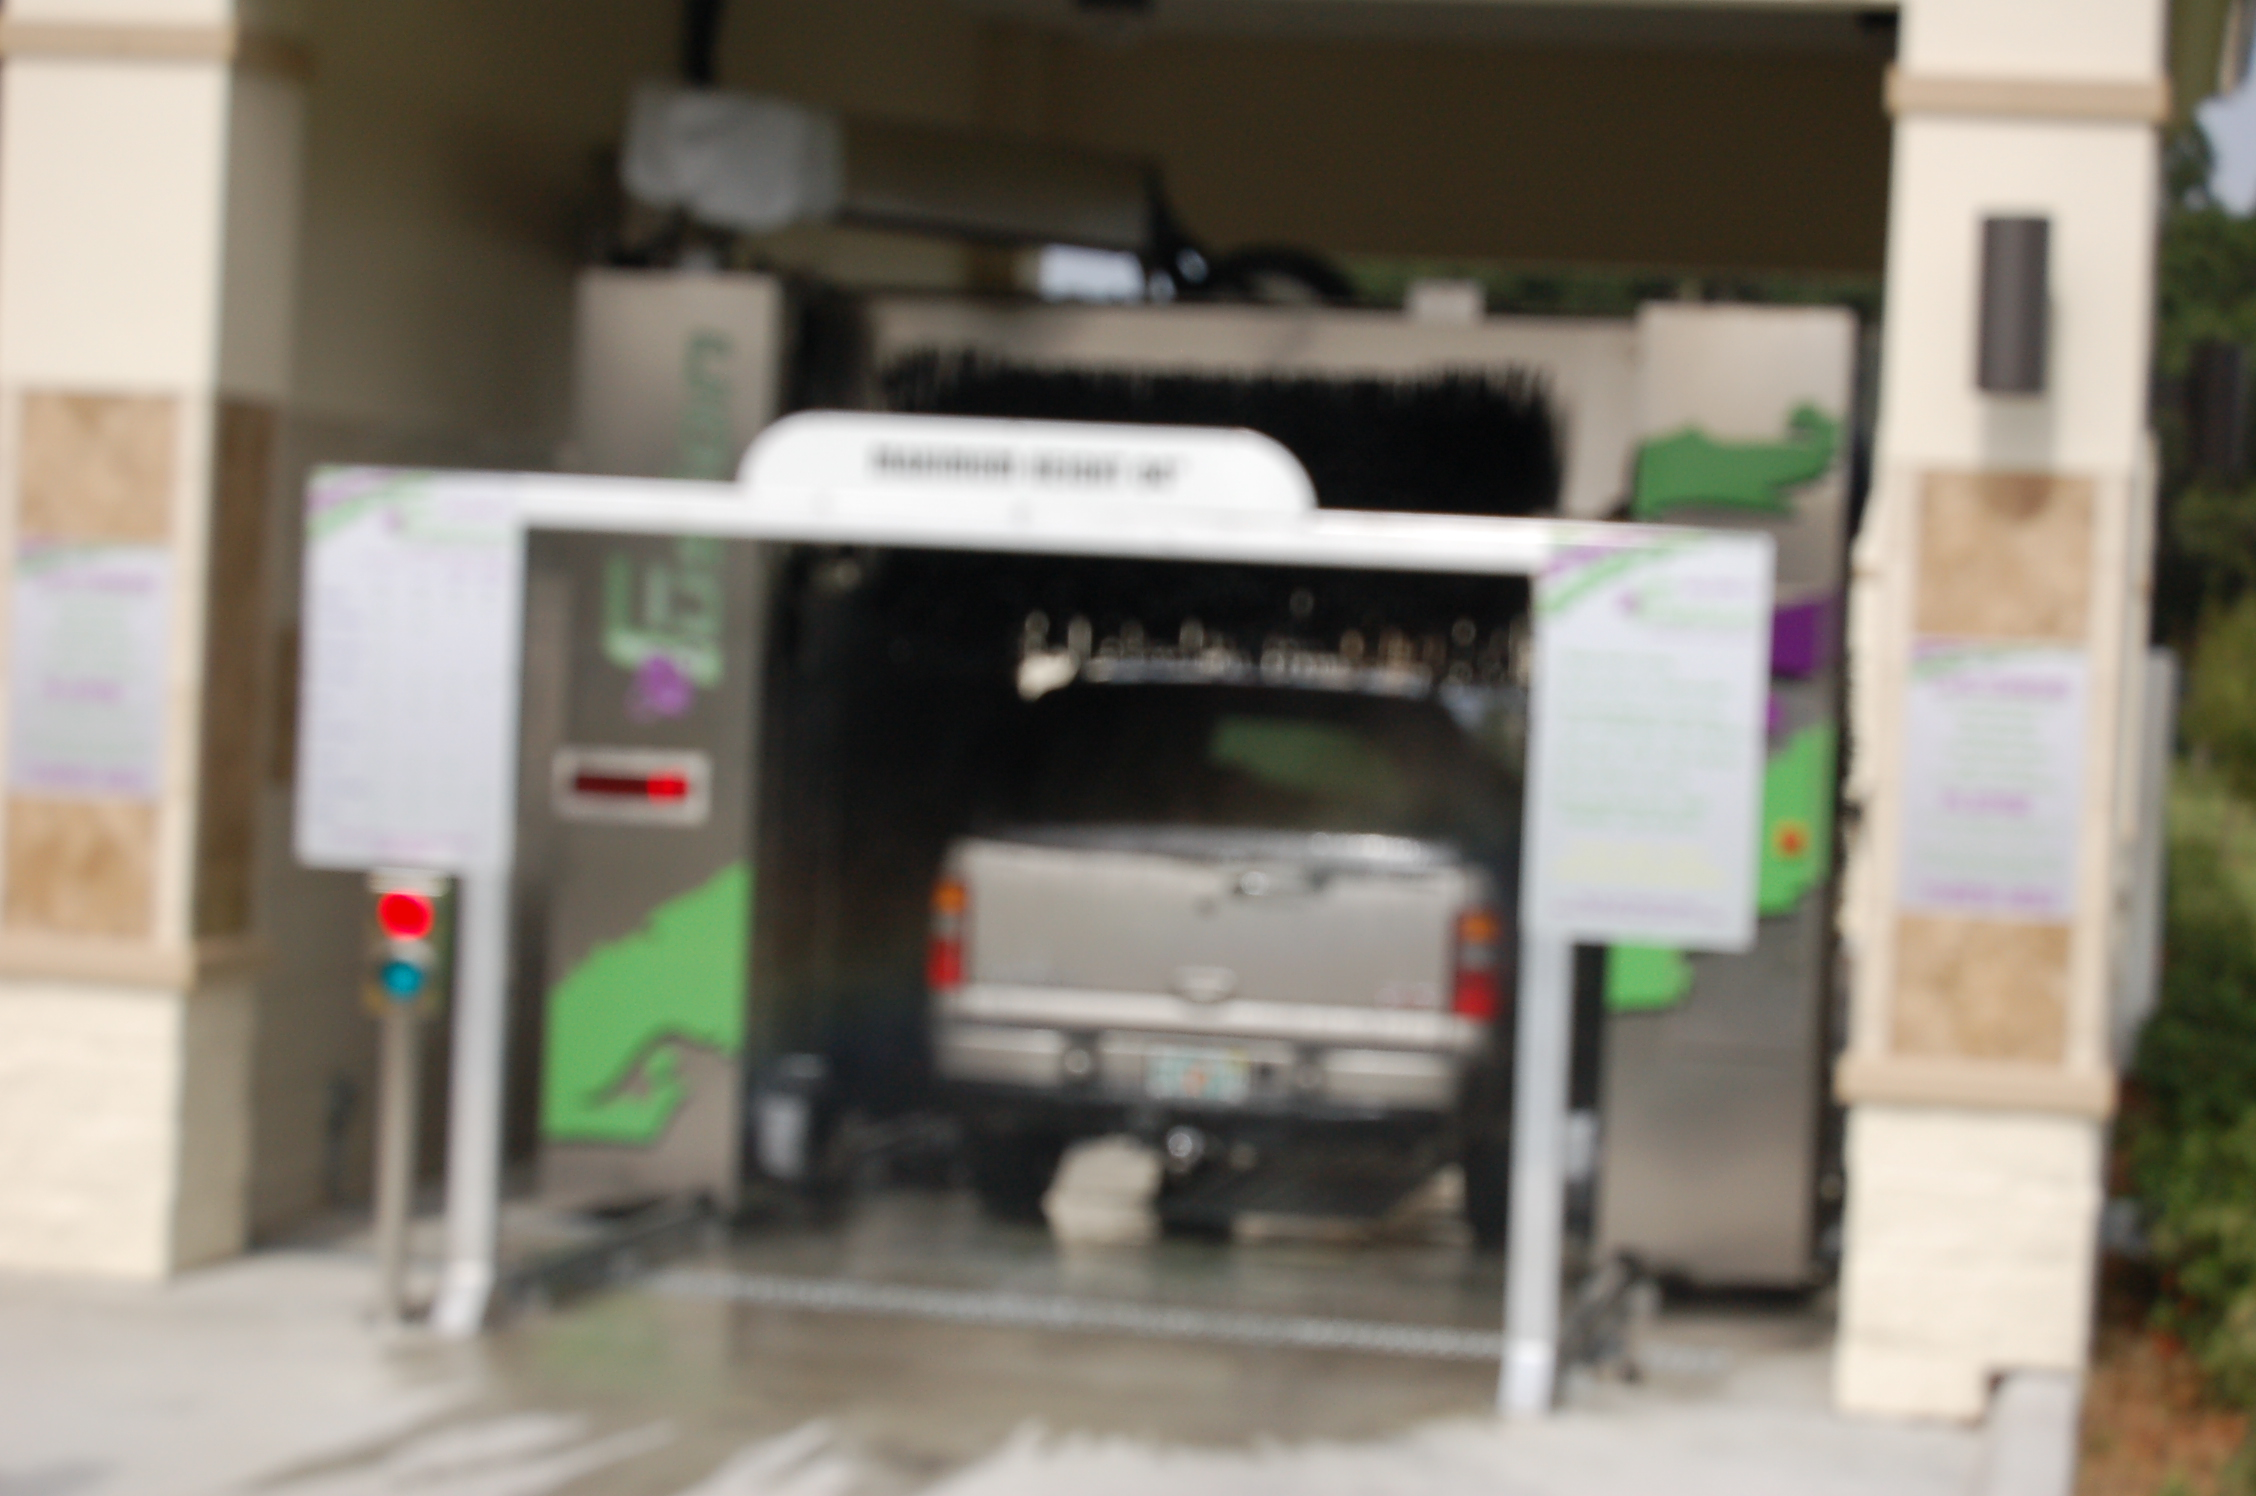 Ultimate car wash let us us be your ultimate car wash automatic bays service 1 2 automatic car wash bays solutioingenieria Choice Image